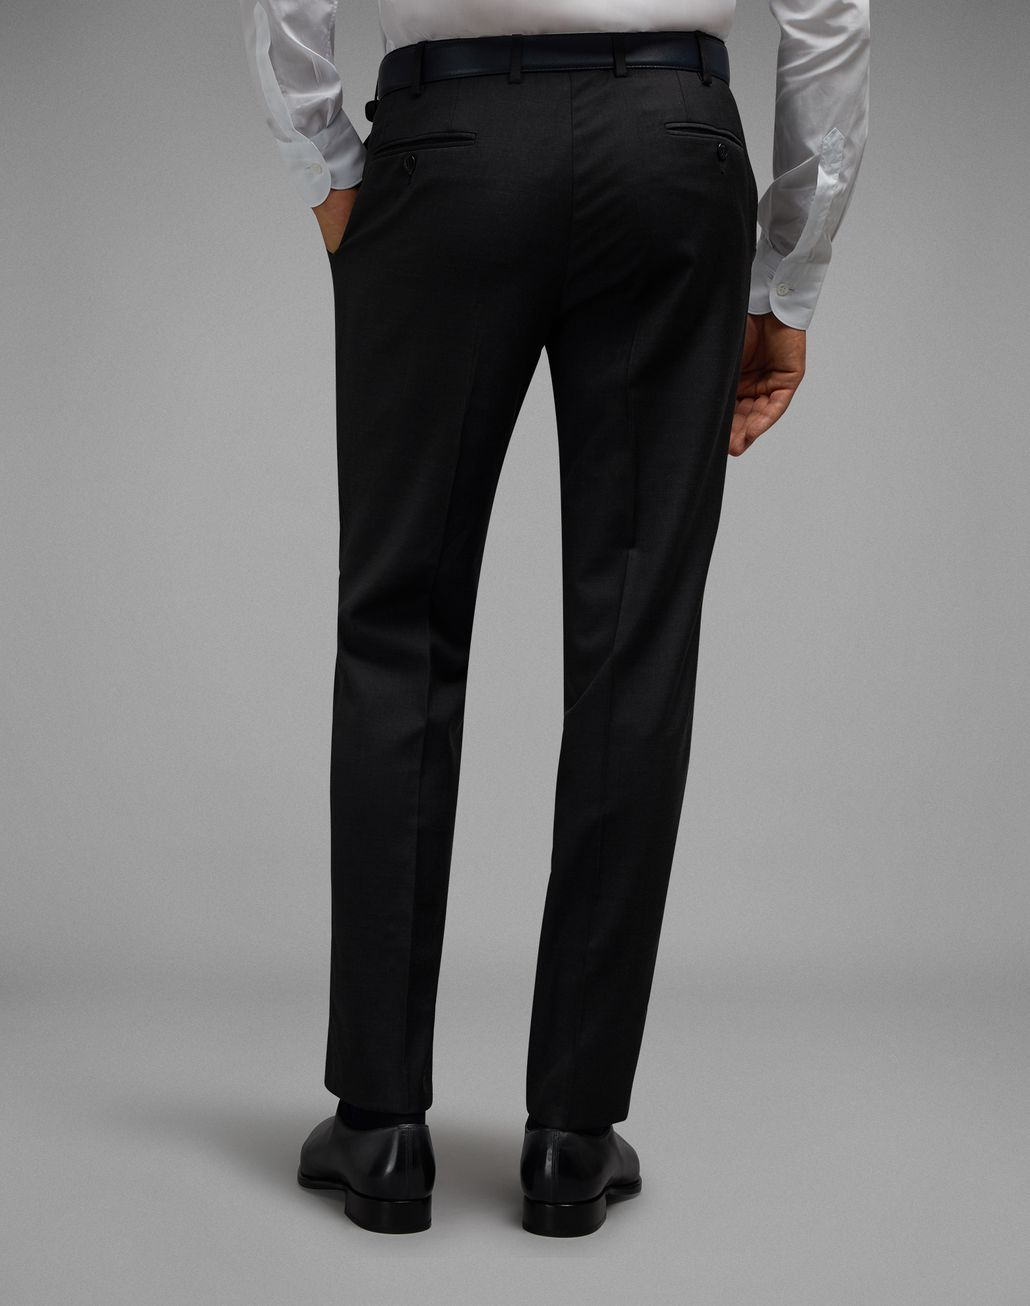 BRIONI 'Essential' Grey Tigullio Trousers Trousers [*** pickupInStoreShippingNotGuaranteed_info ***] d